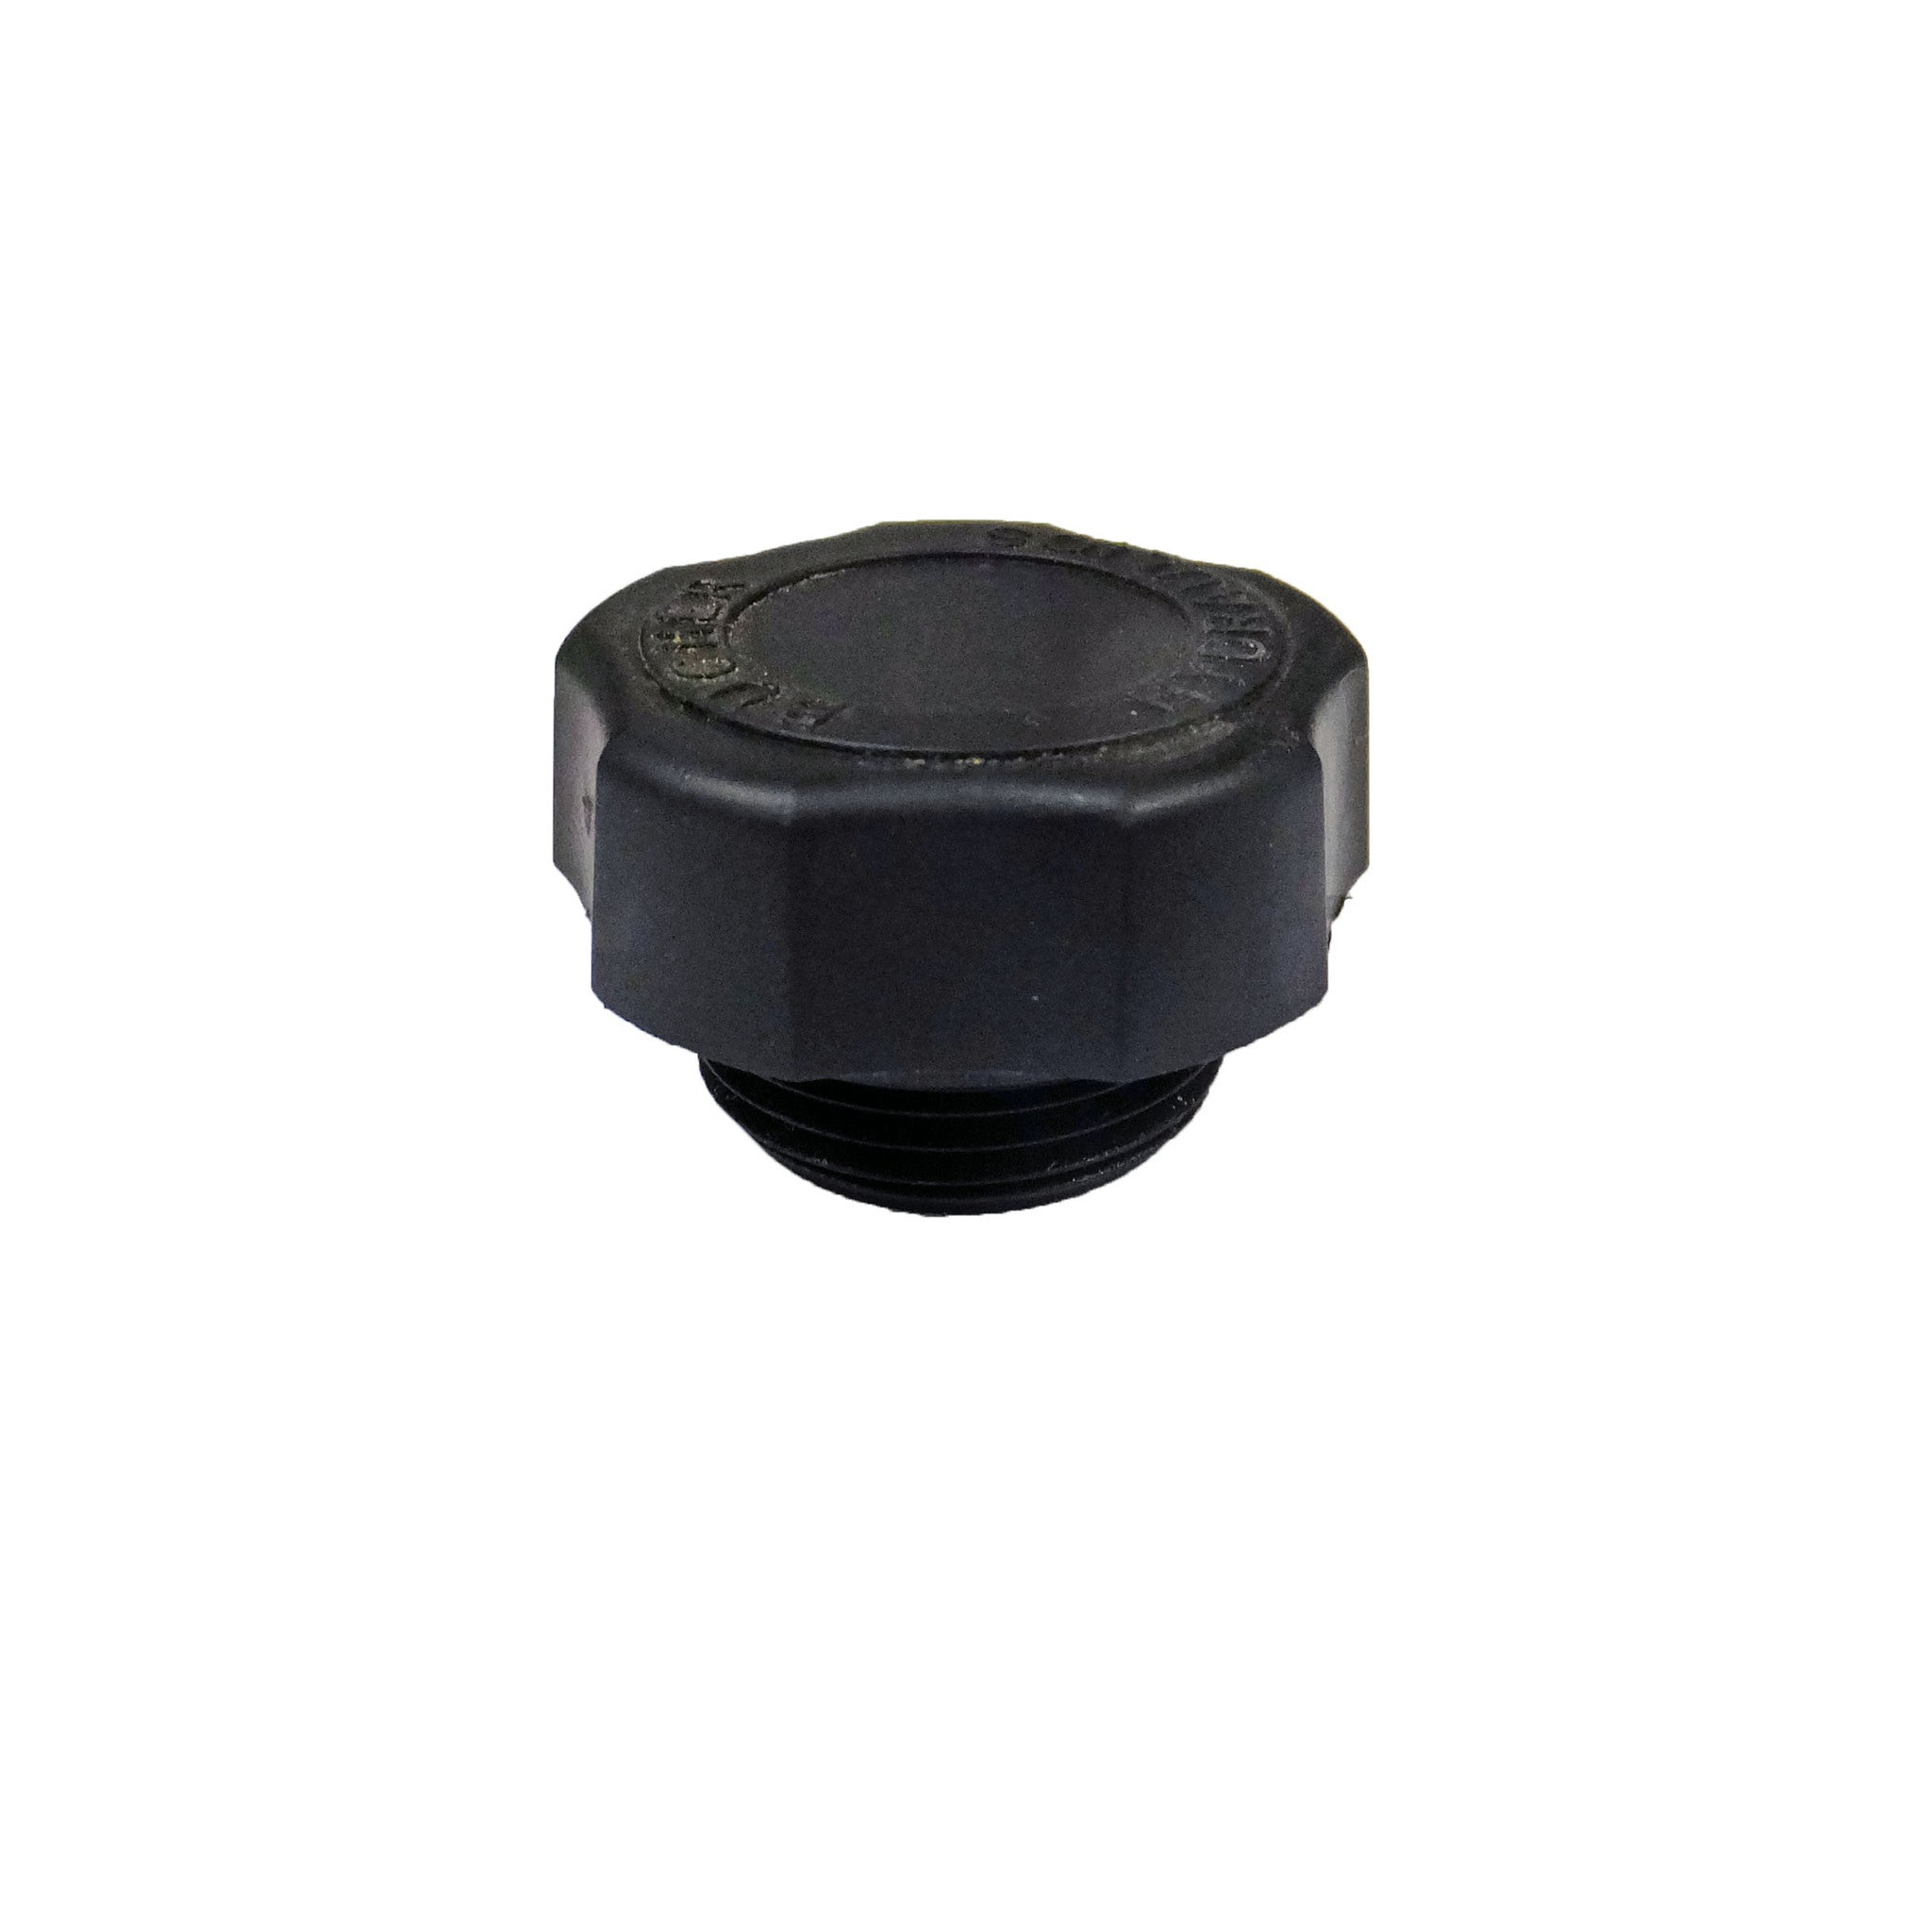 Breather_Cap_for_Bucher_2?v=1474302324 rugby www ordertrailerparts com Rugby Dump Bodies at bayanpartner.co